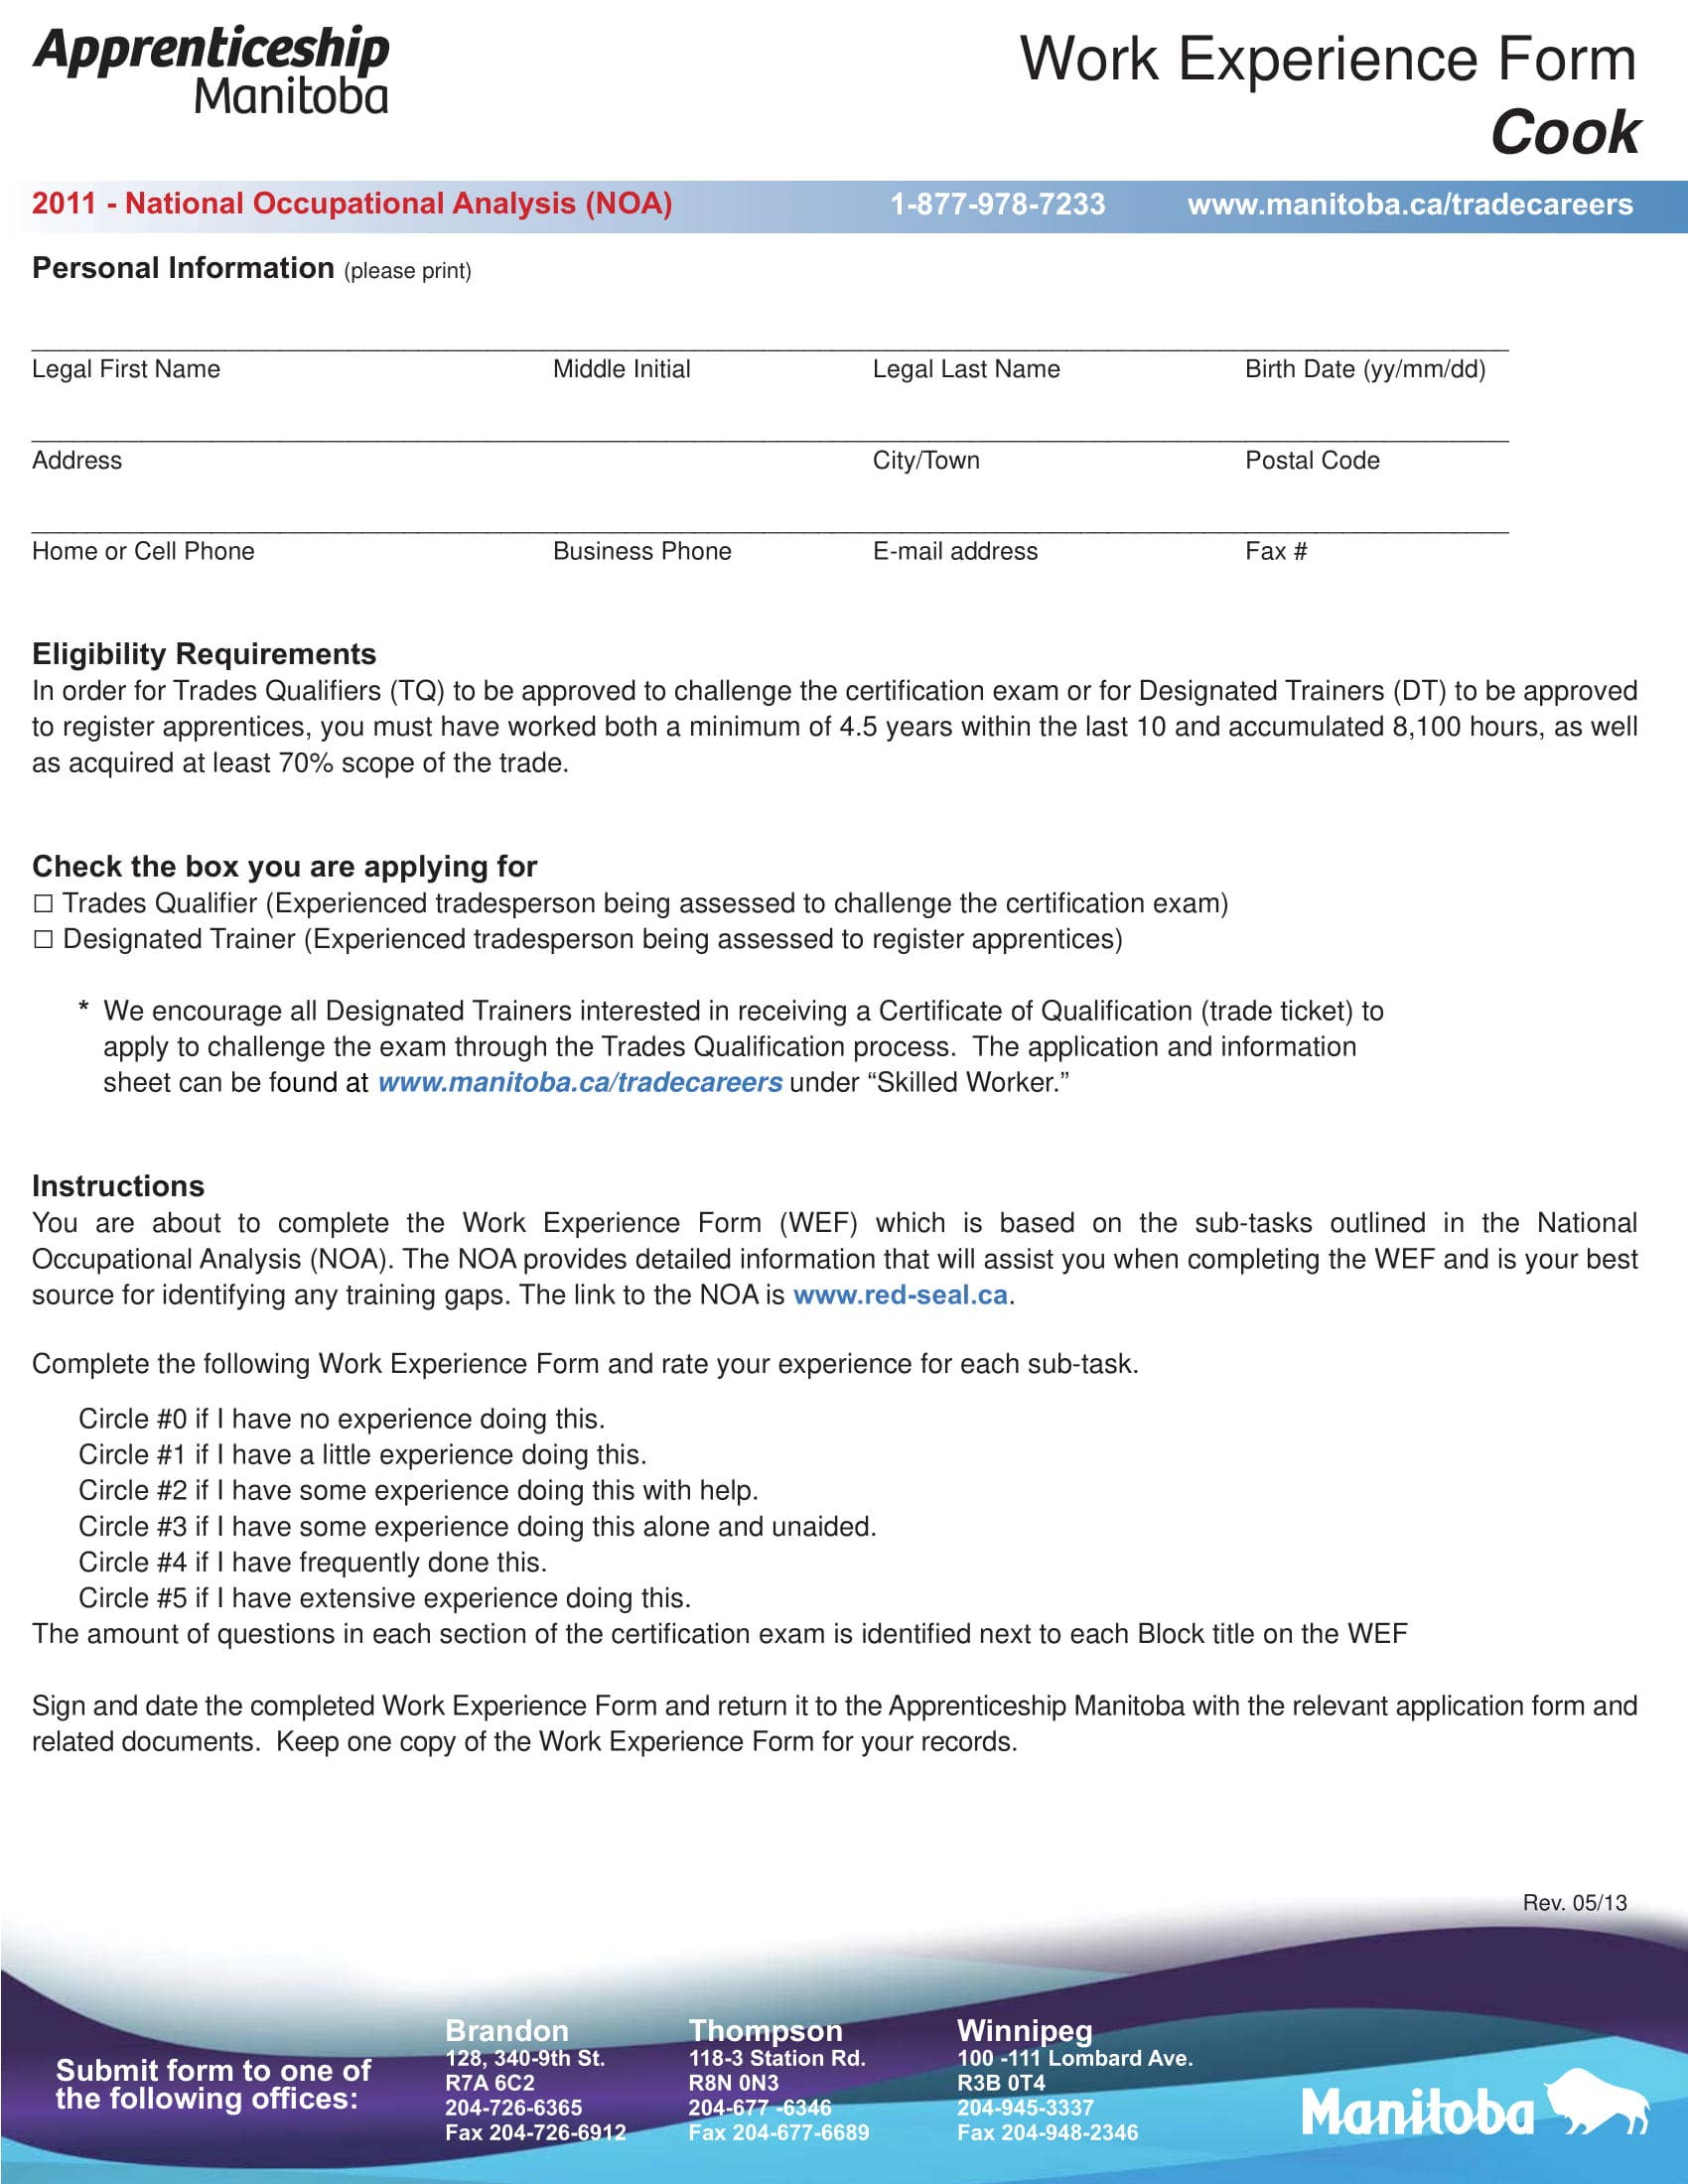 work experience form 01